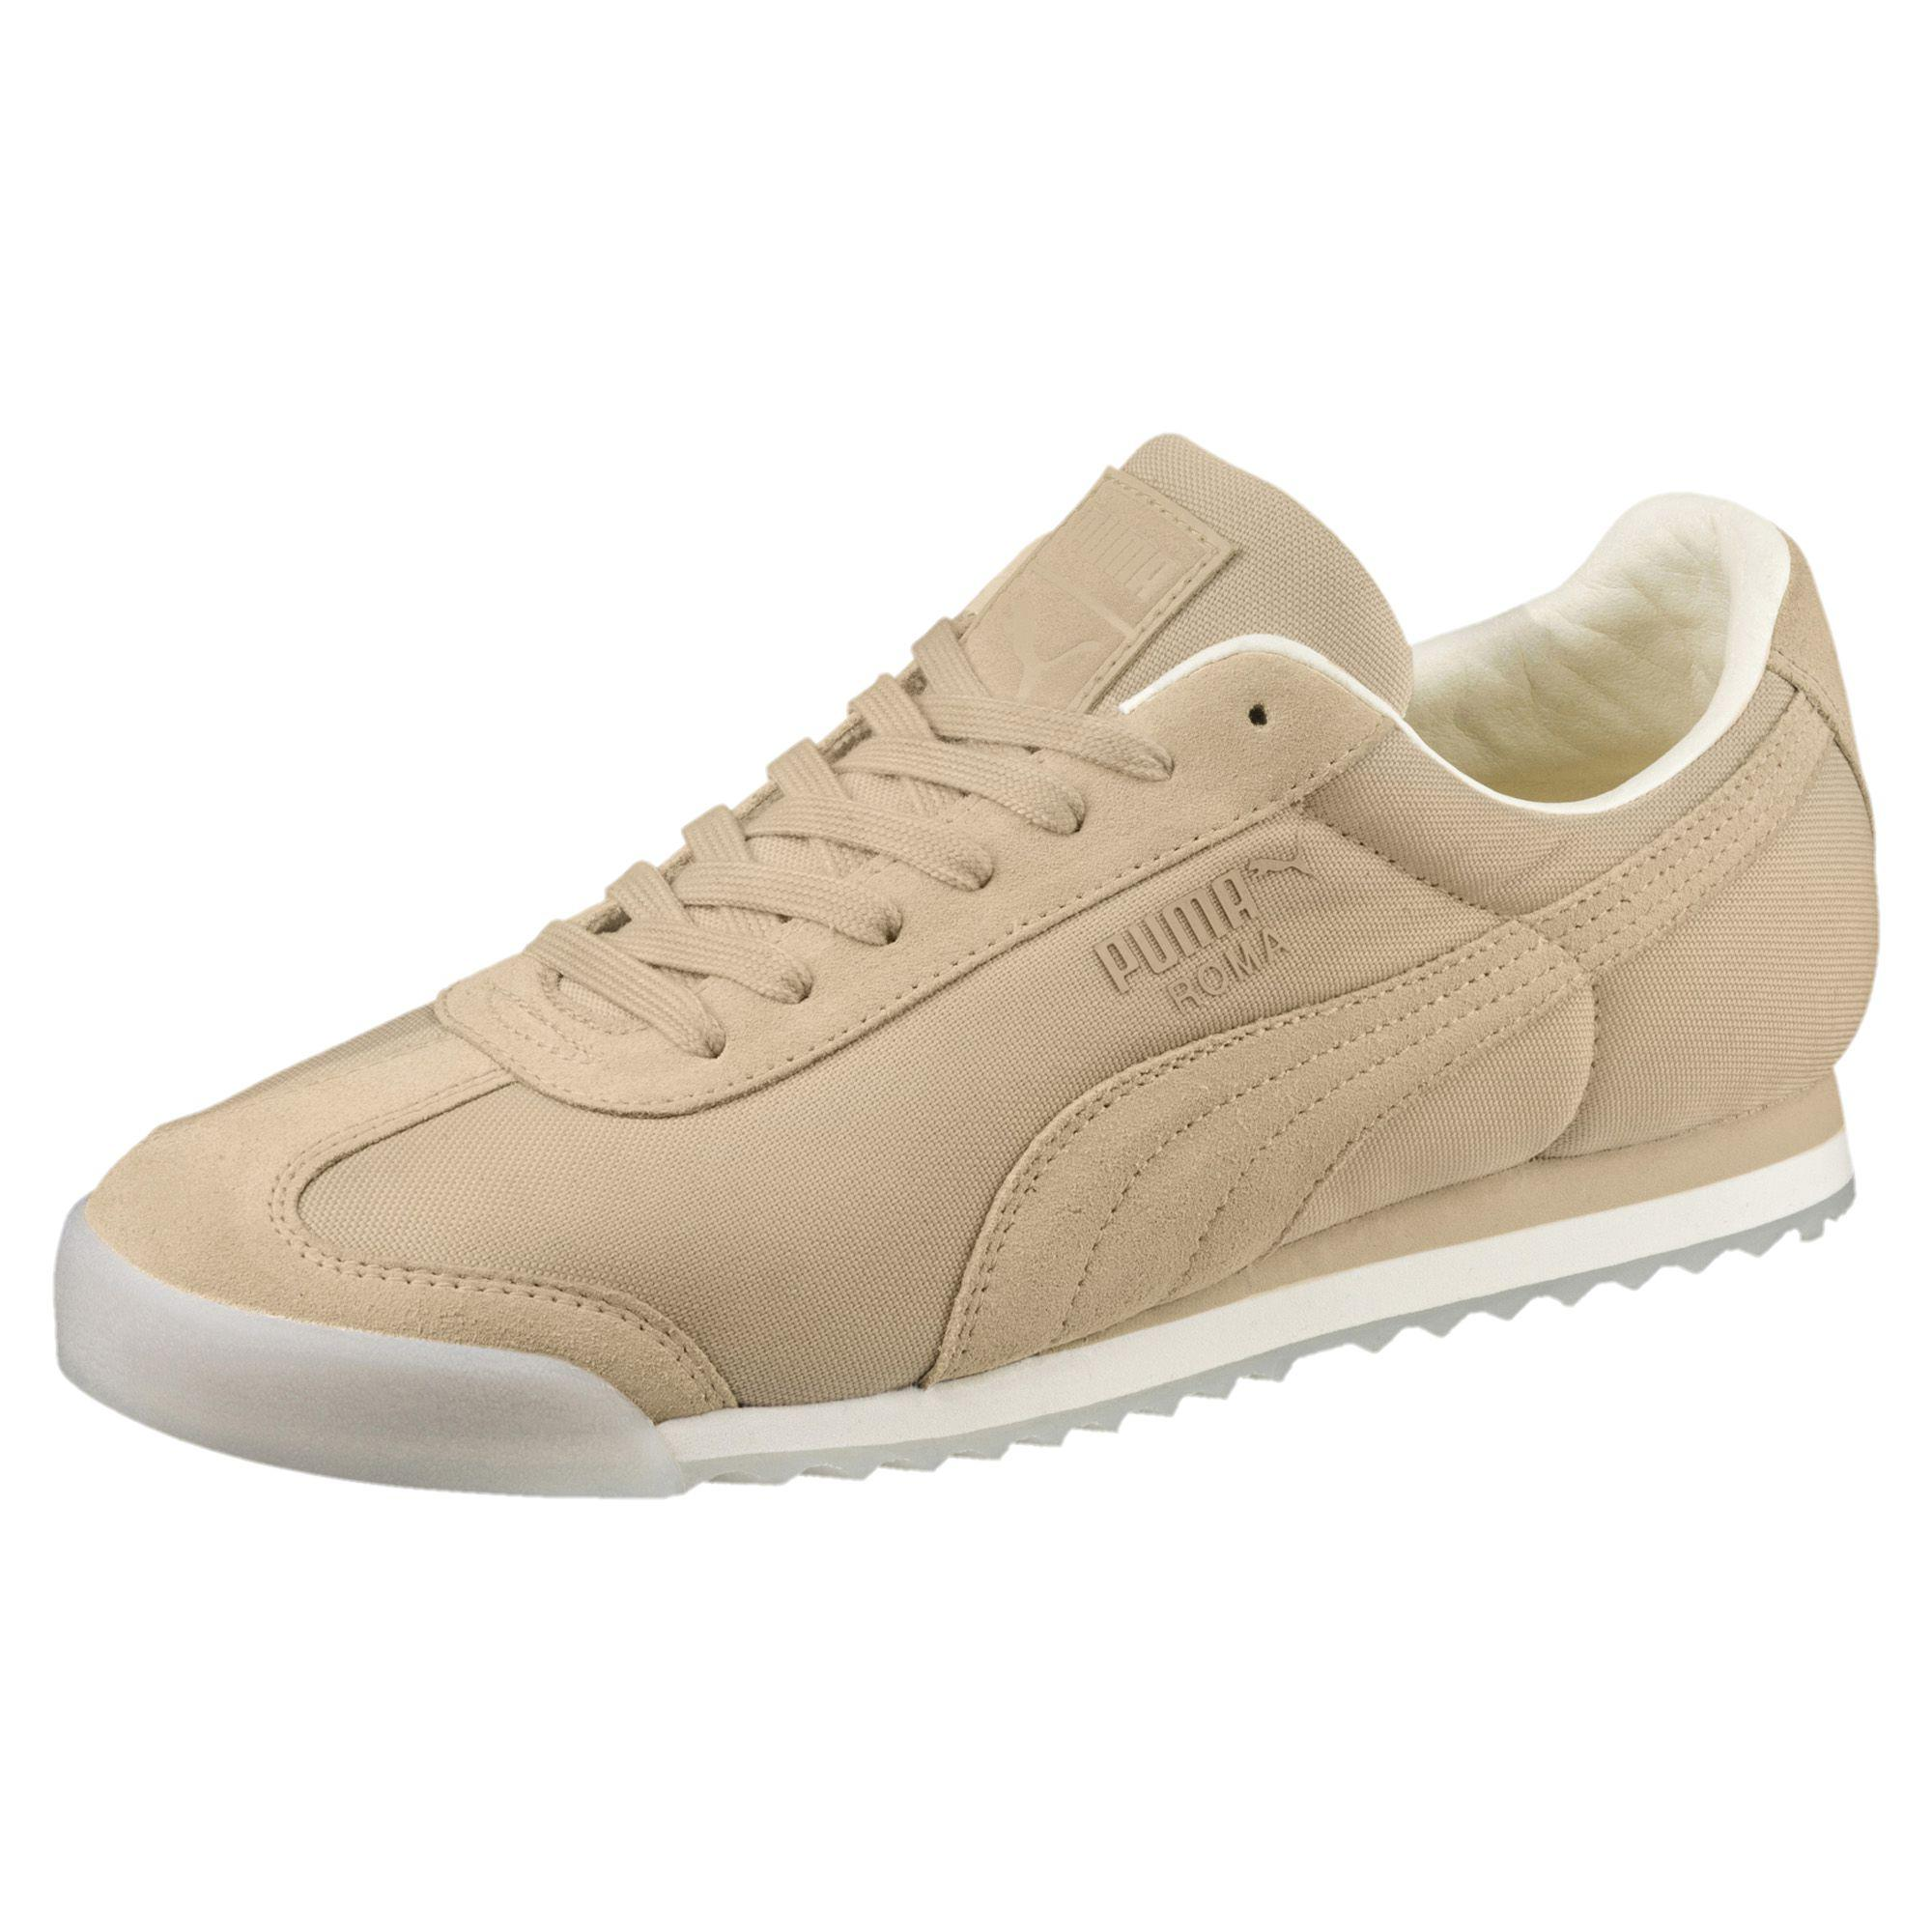 bd5a7d67046 Lyst - PUMA Roma Summer Sneakers for Men